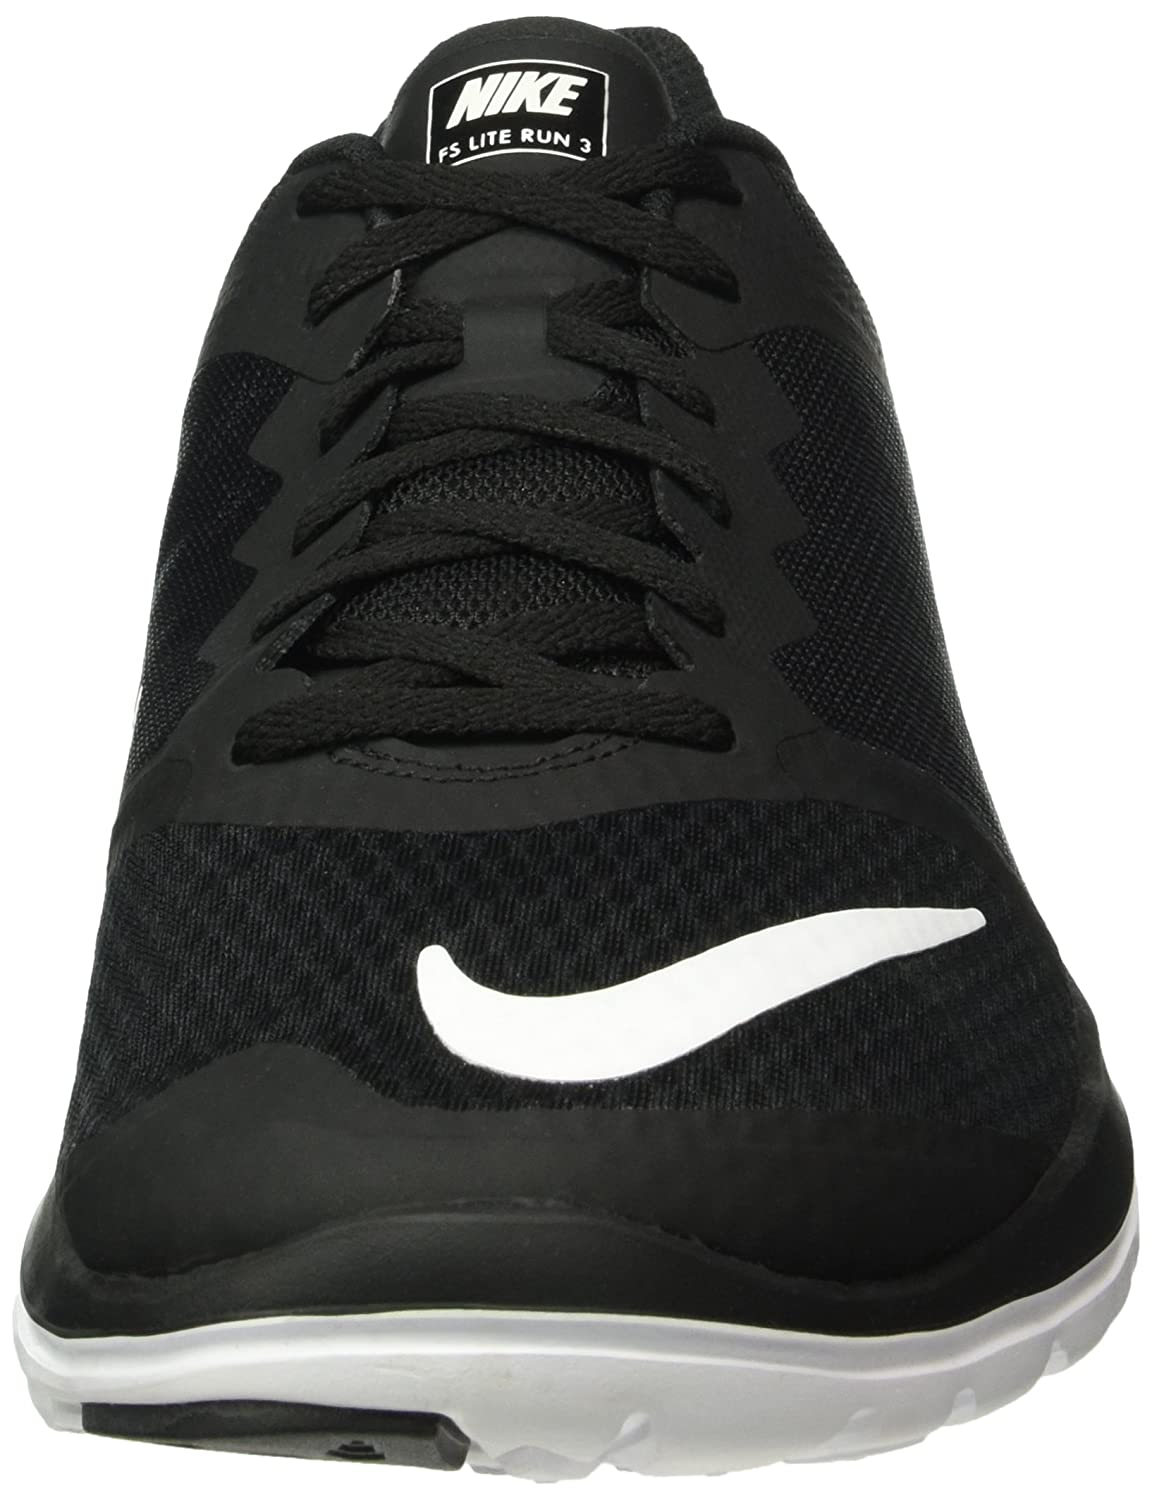 competitive price a979c e592d Nike Men's Fs Lite Run 3 Running Shoes